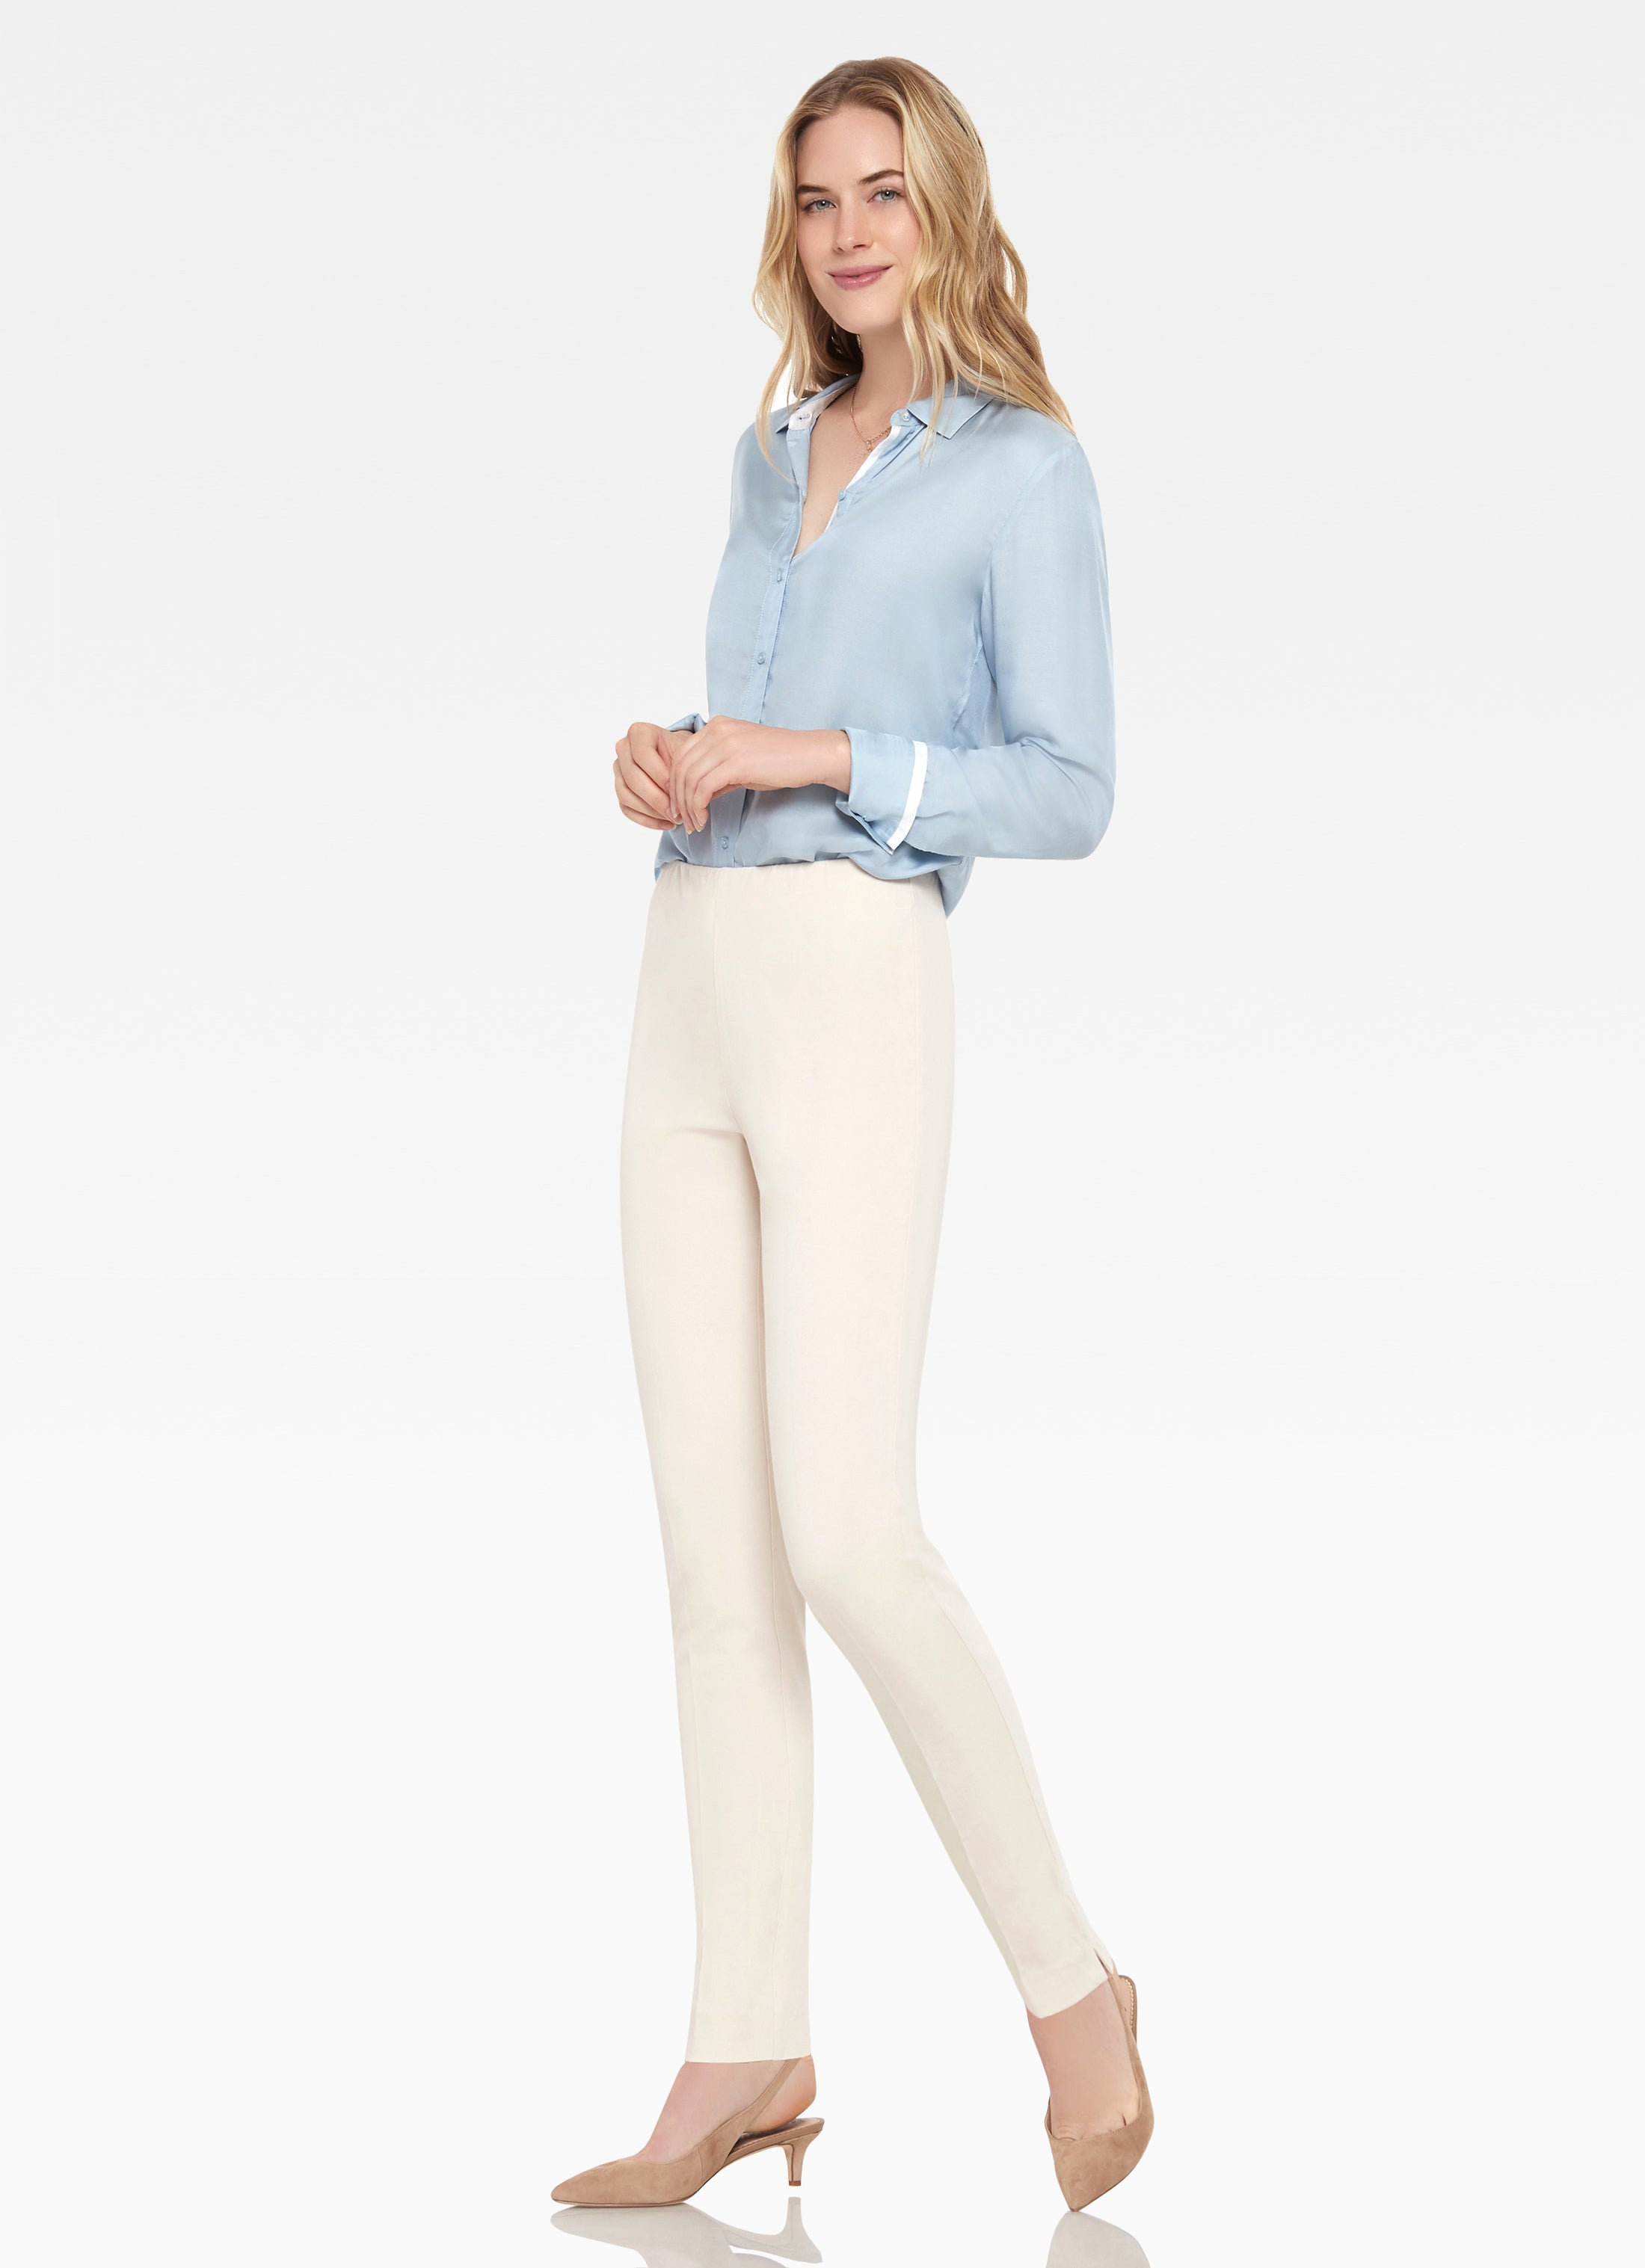 The Springfield Slim Pull On Pant